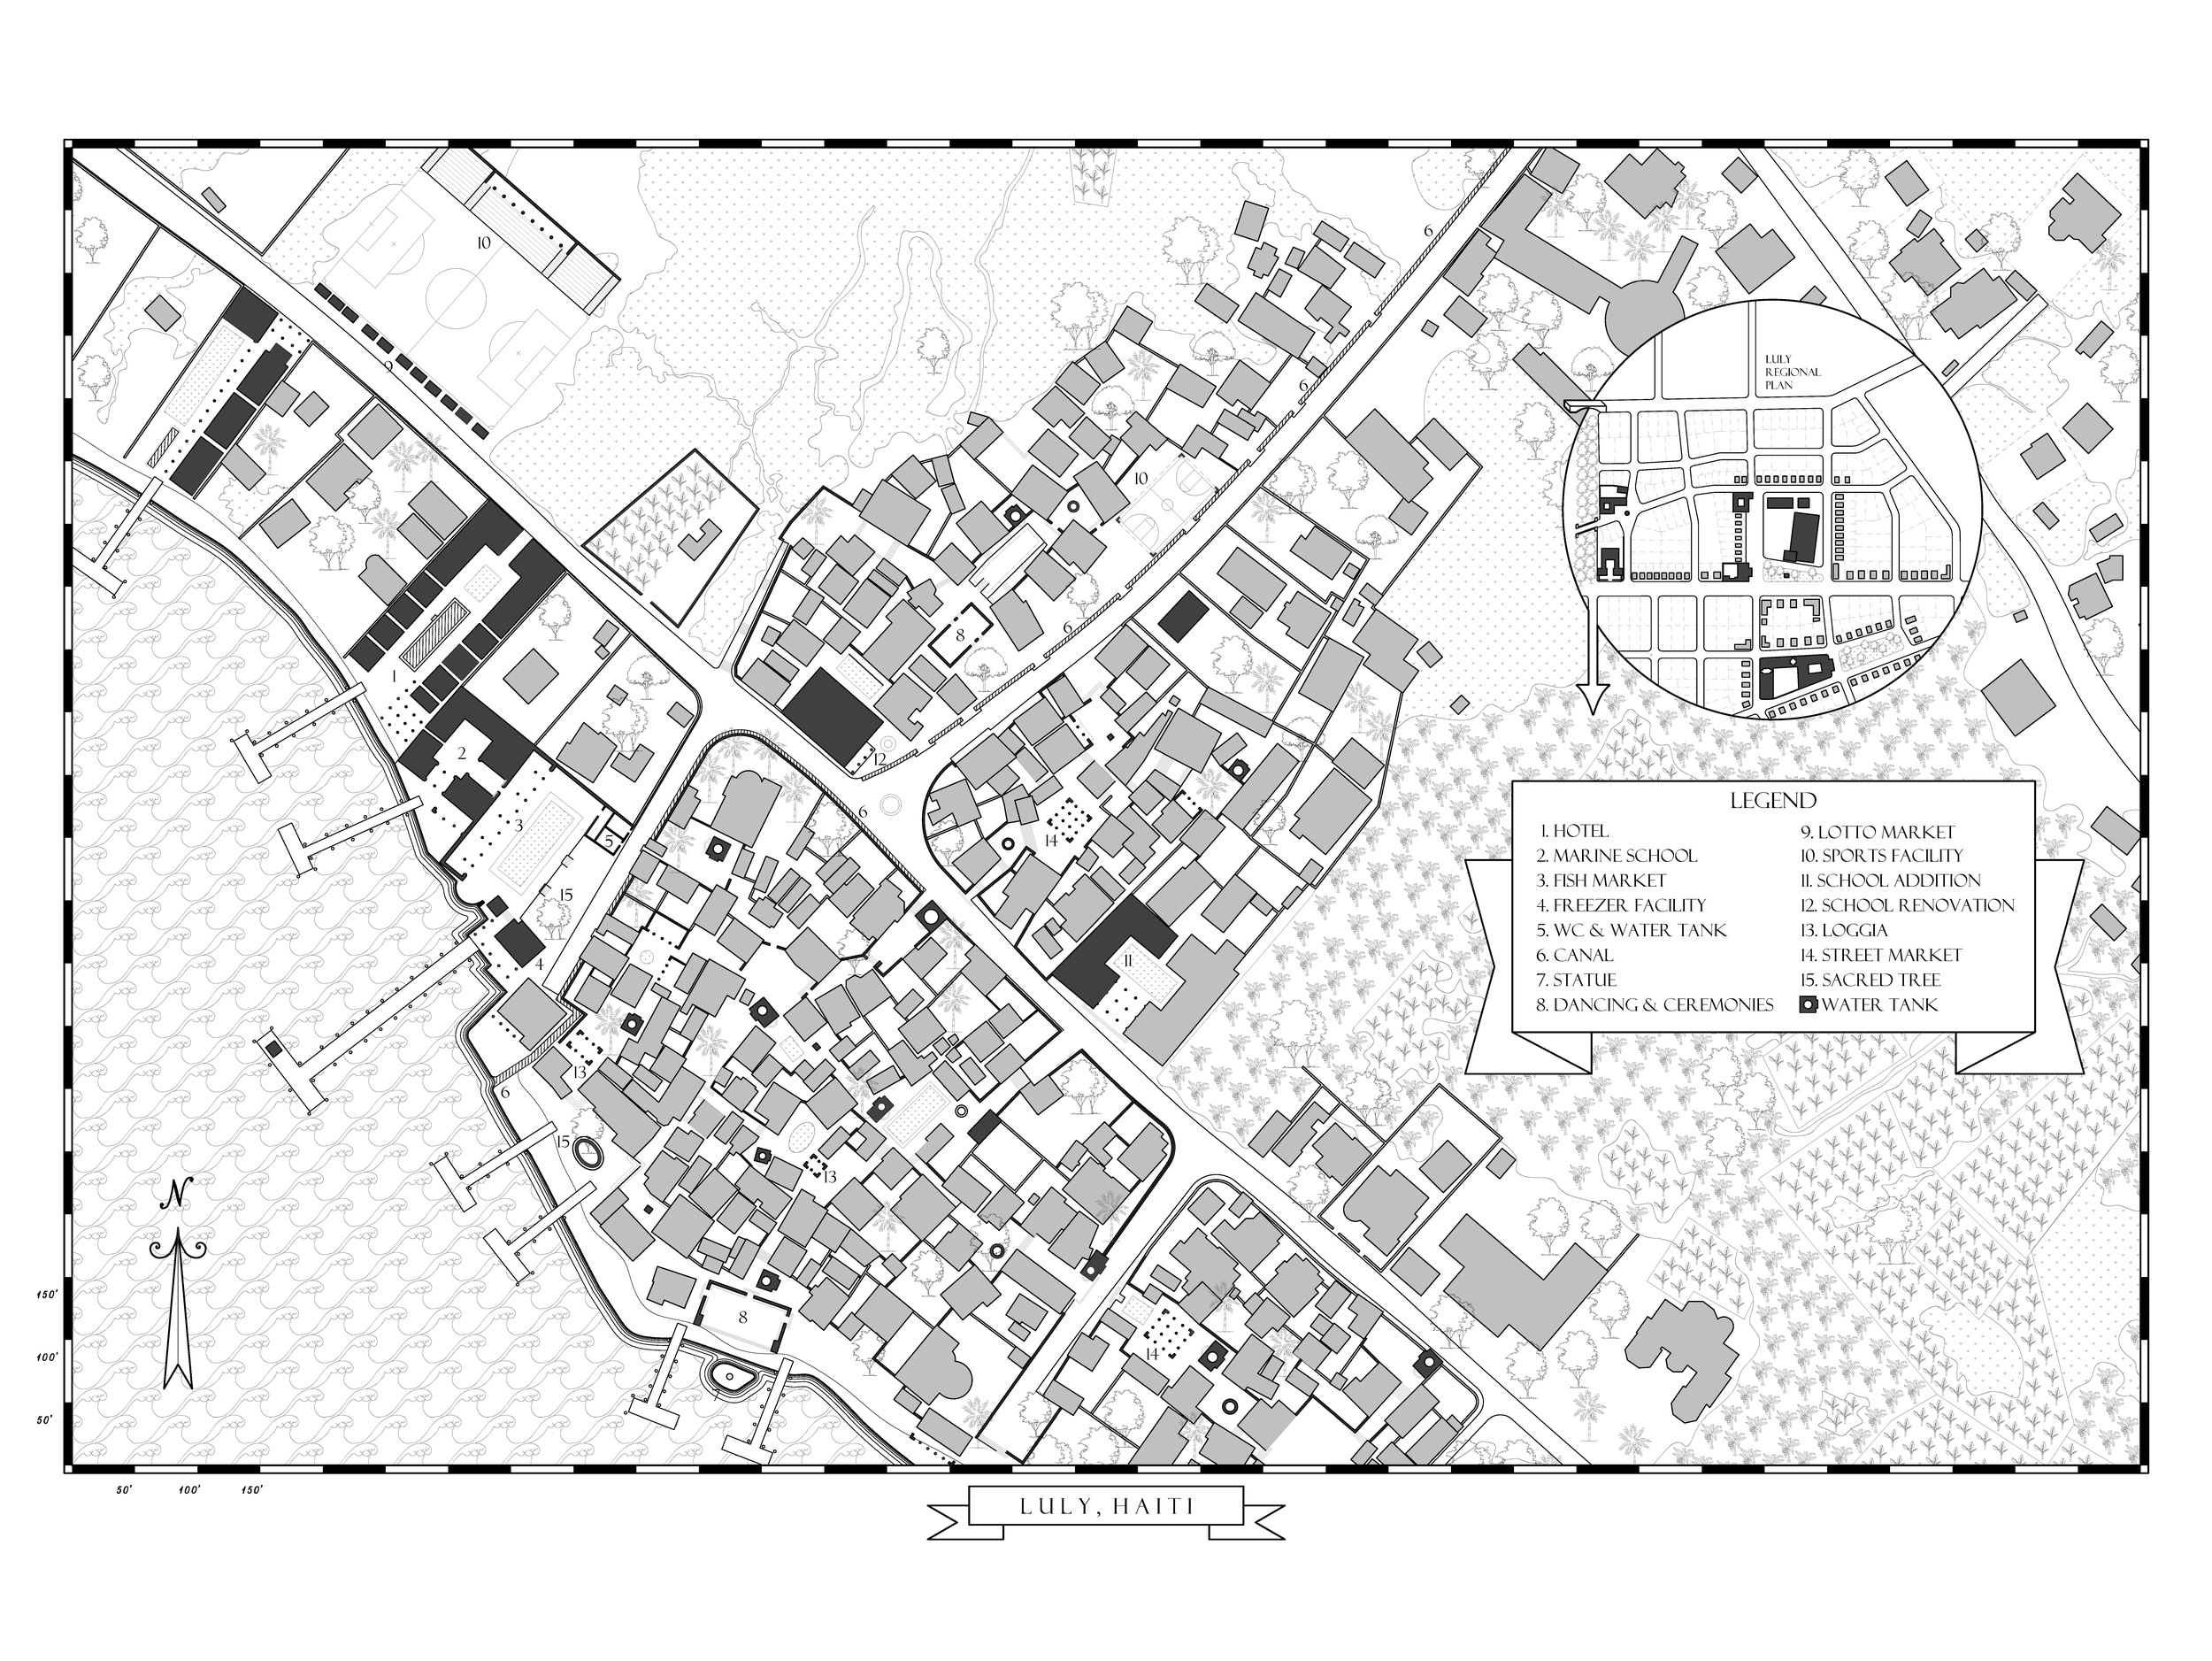 Luly Map with Proposals_resized.jpg